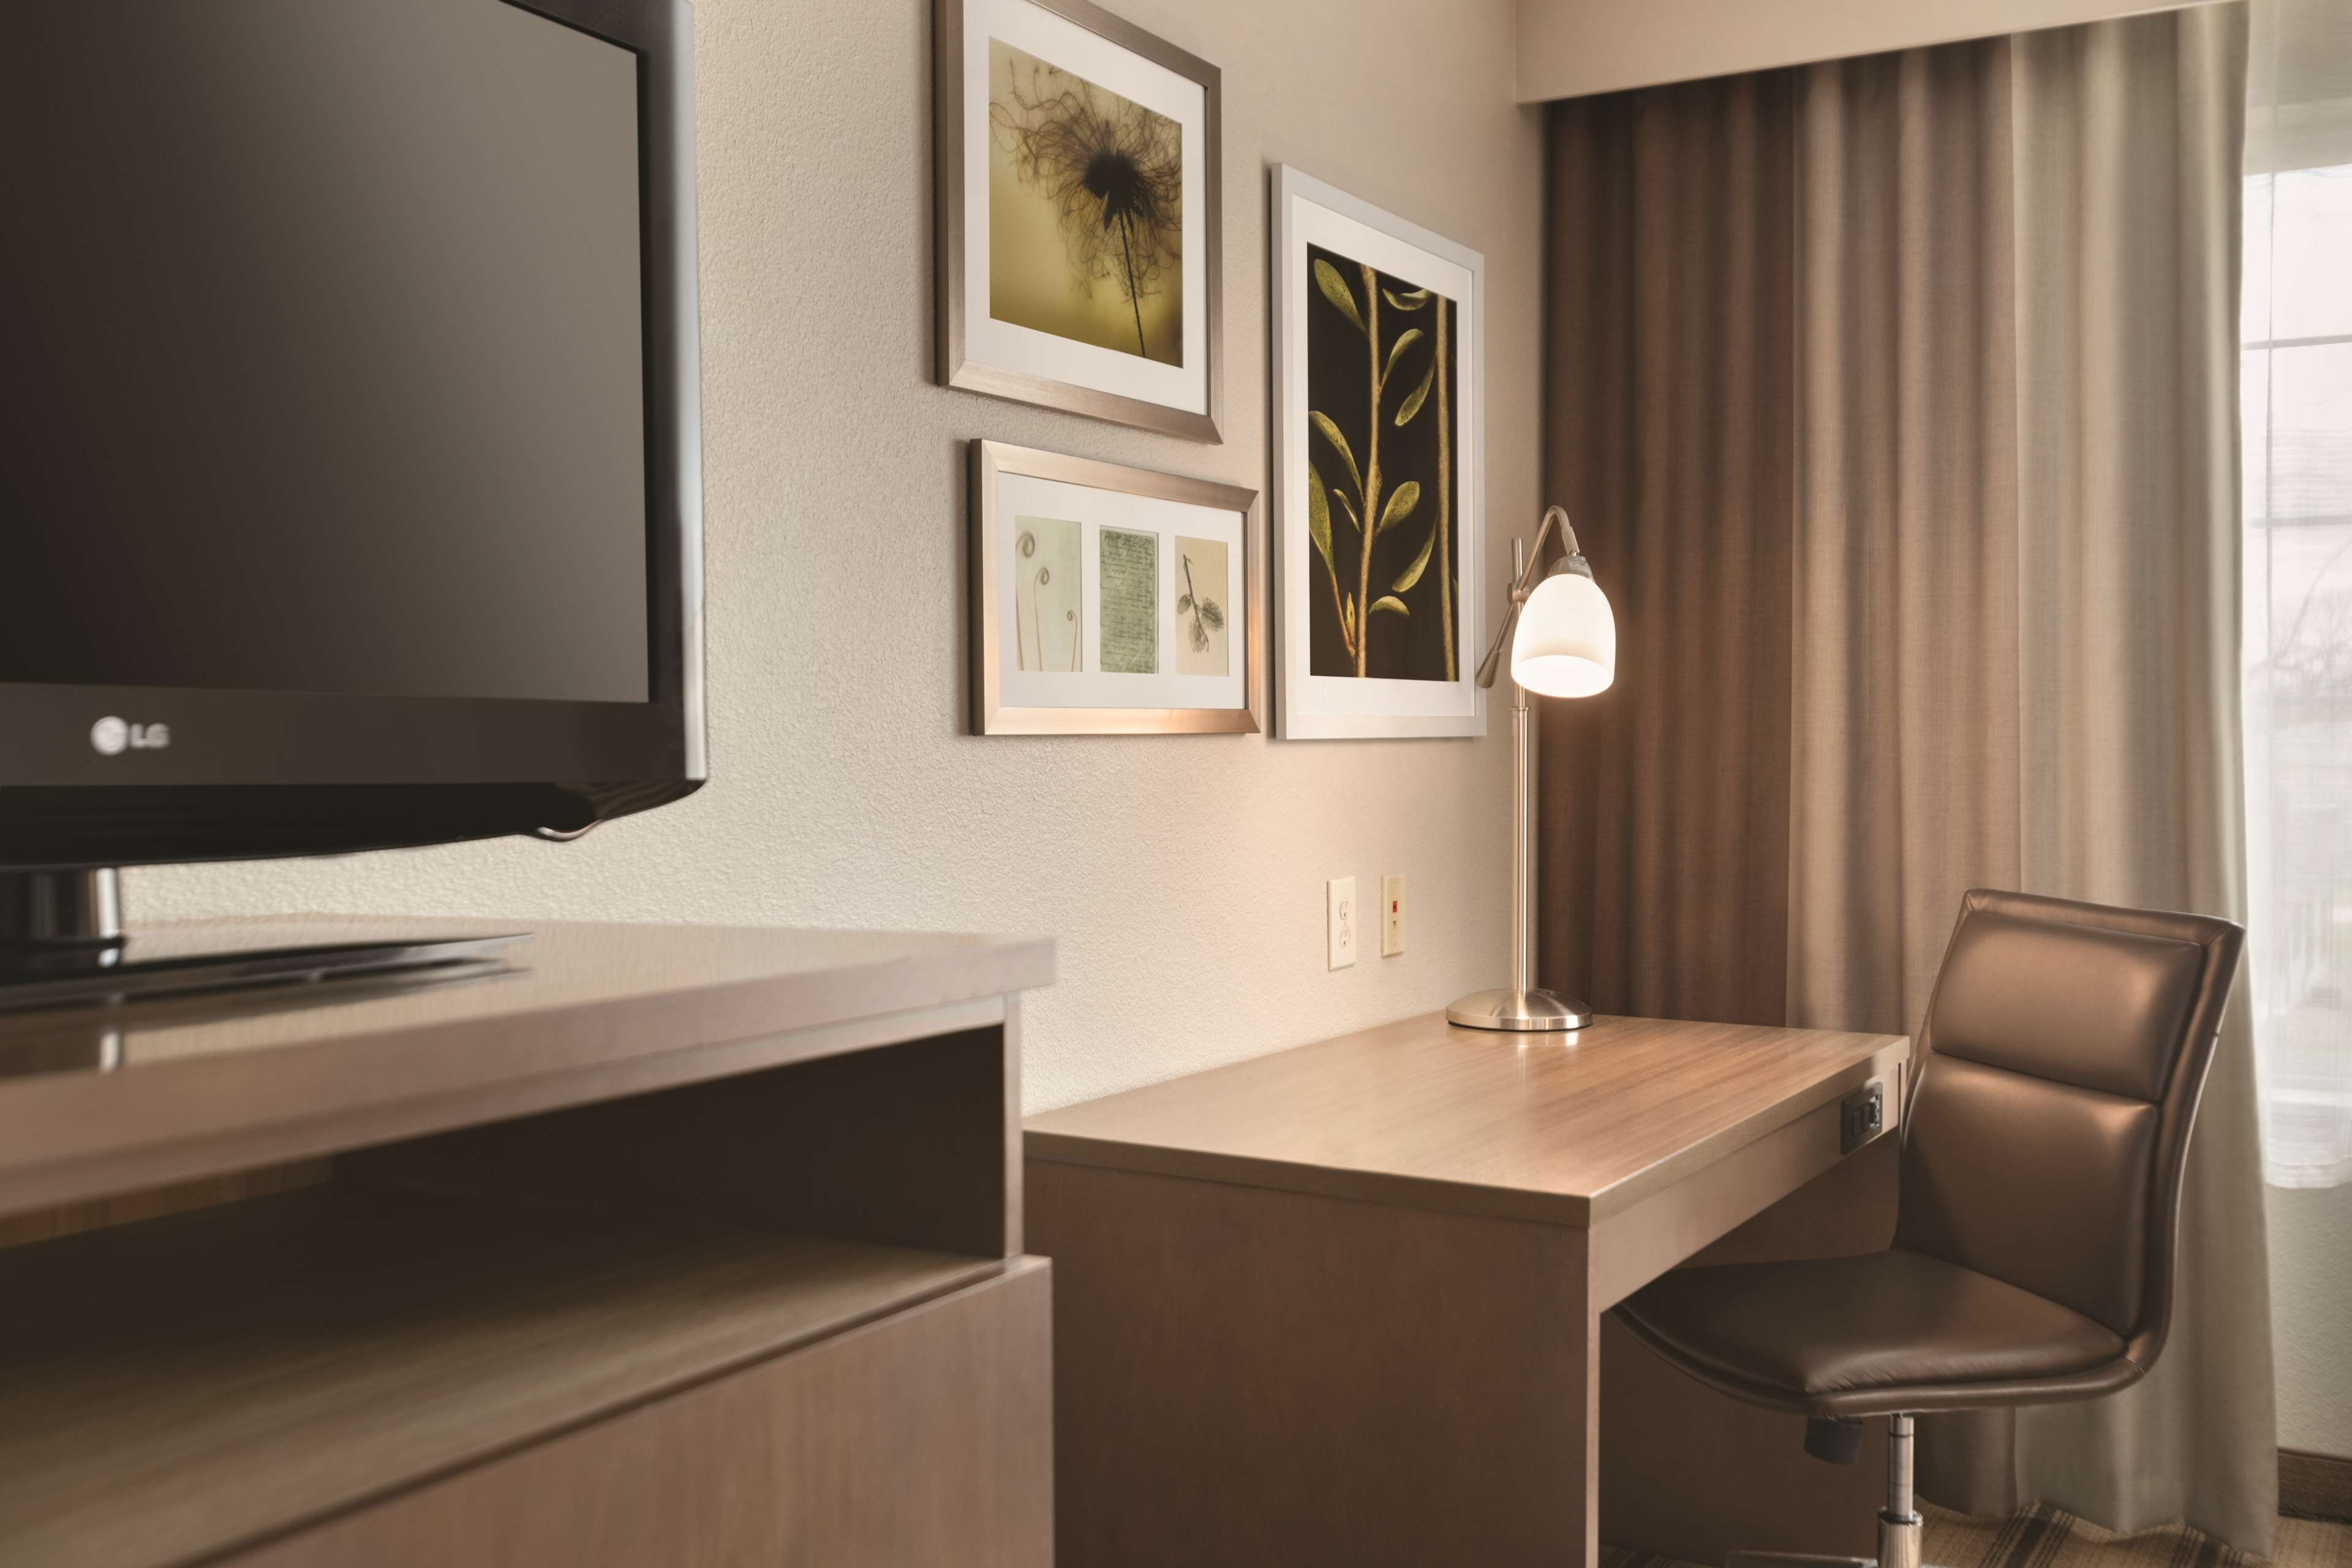 Country Inn & Suites by Radisson, Indianapolis Airport South, IN